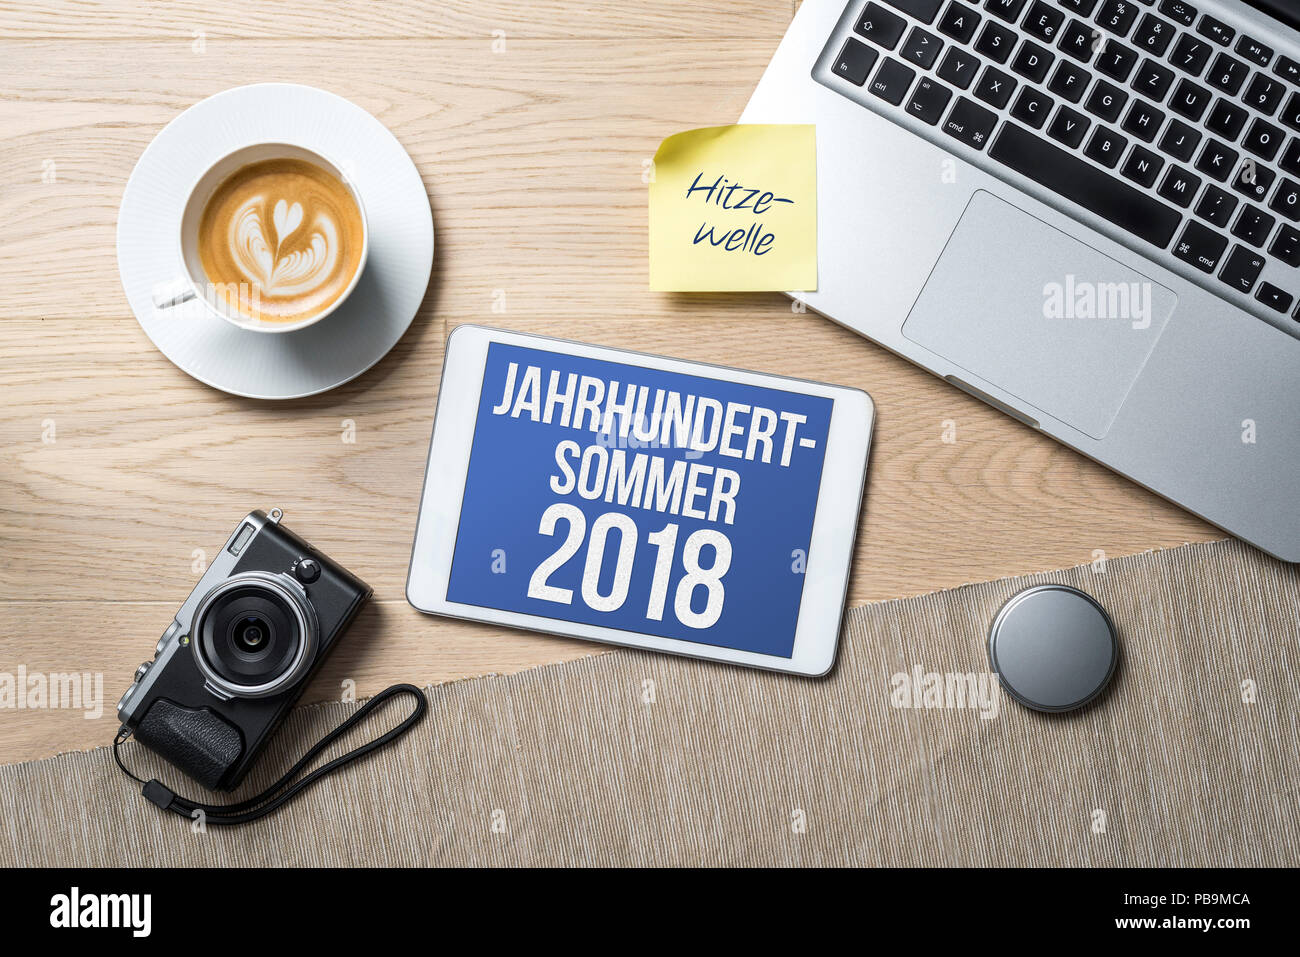 Jahrhundertsommer 2018 written in german on tablet meaning summer of the century and heat wave written on sticky note as flatlay from above of an offi Stock Photo